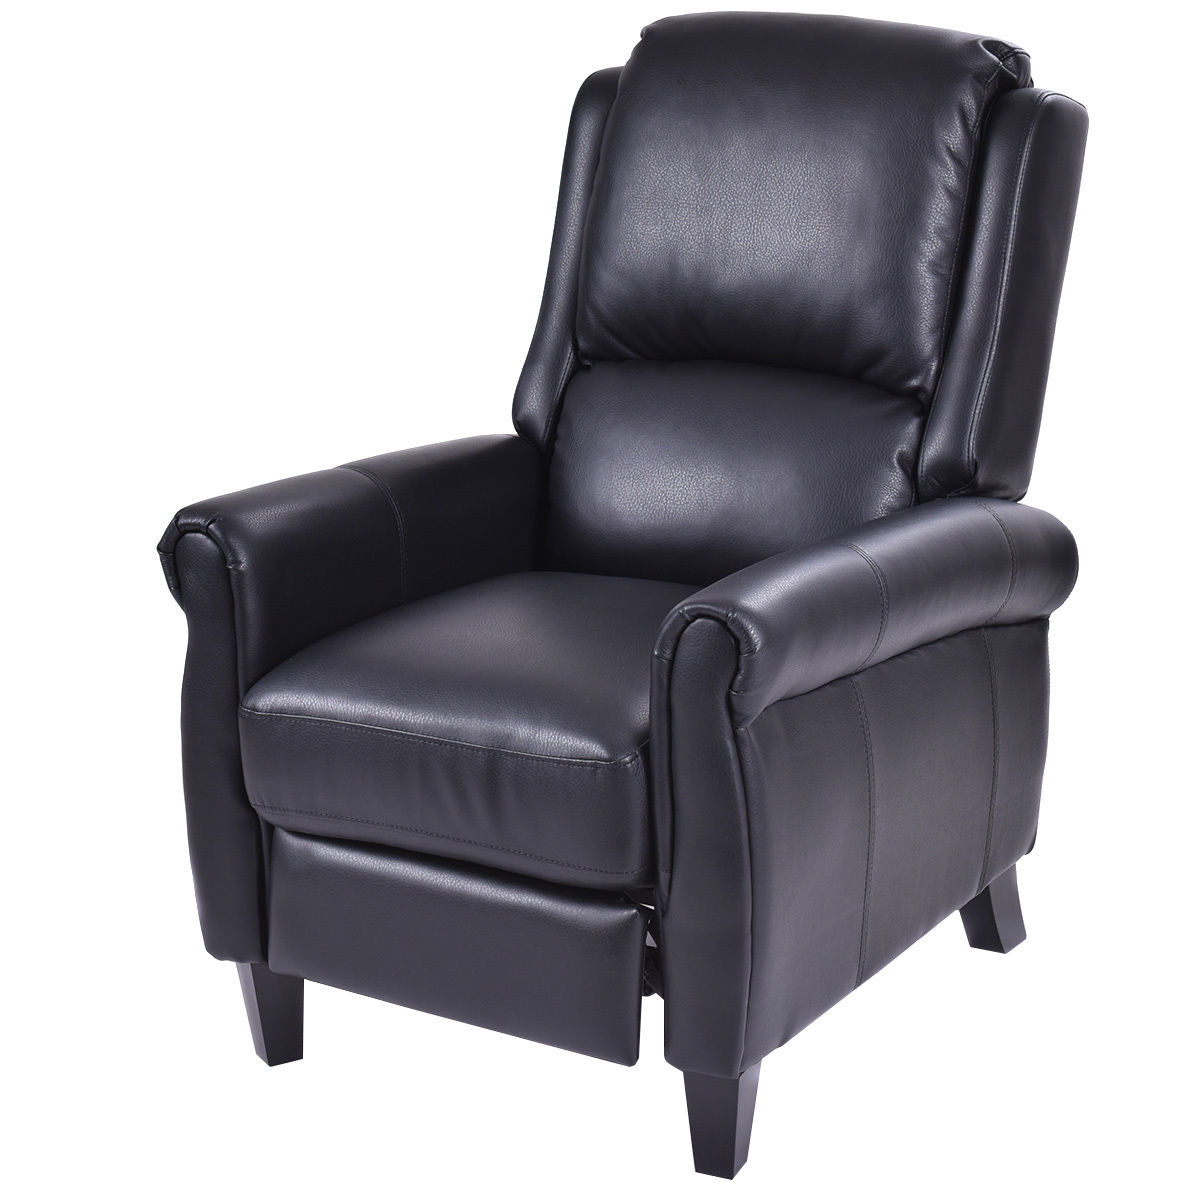 reclining accent chair best gaming reddit costway leather recliner push back living room home furniture w leg rests walmart com